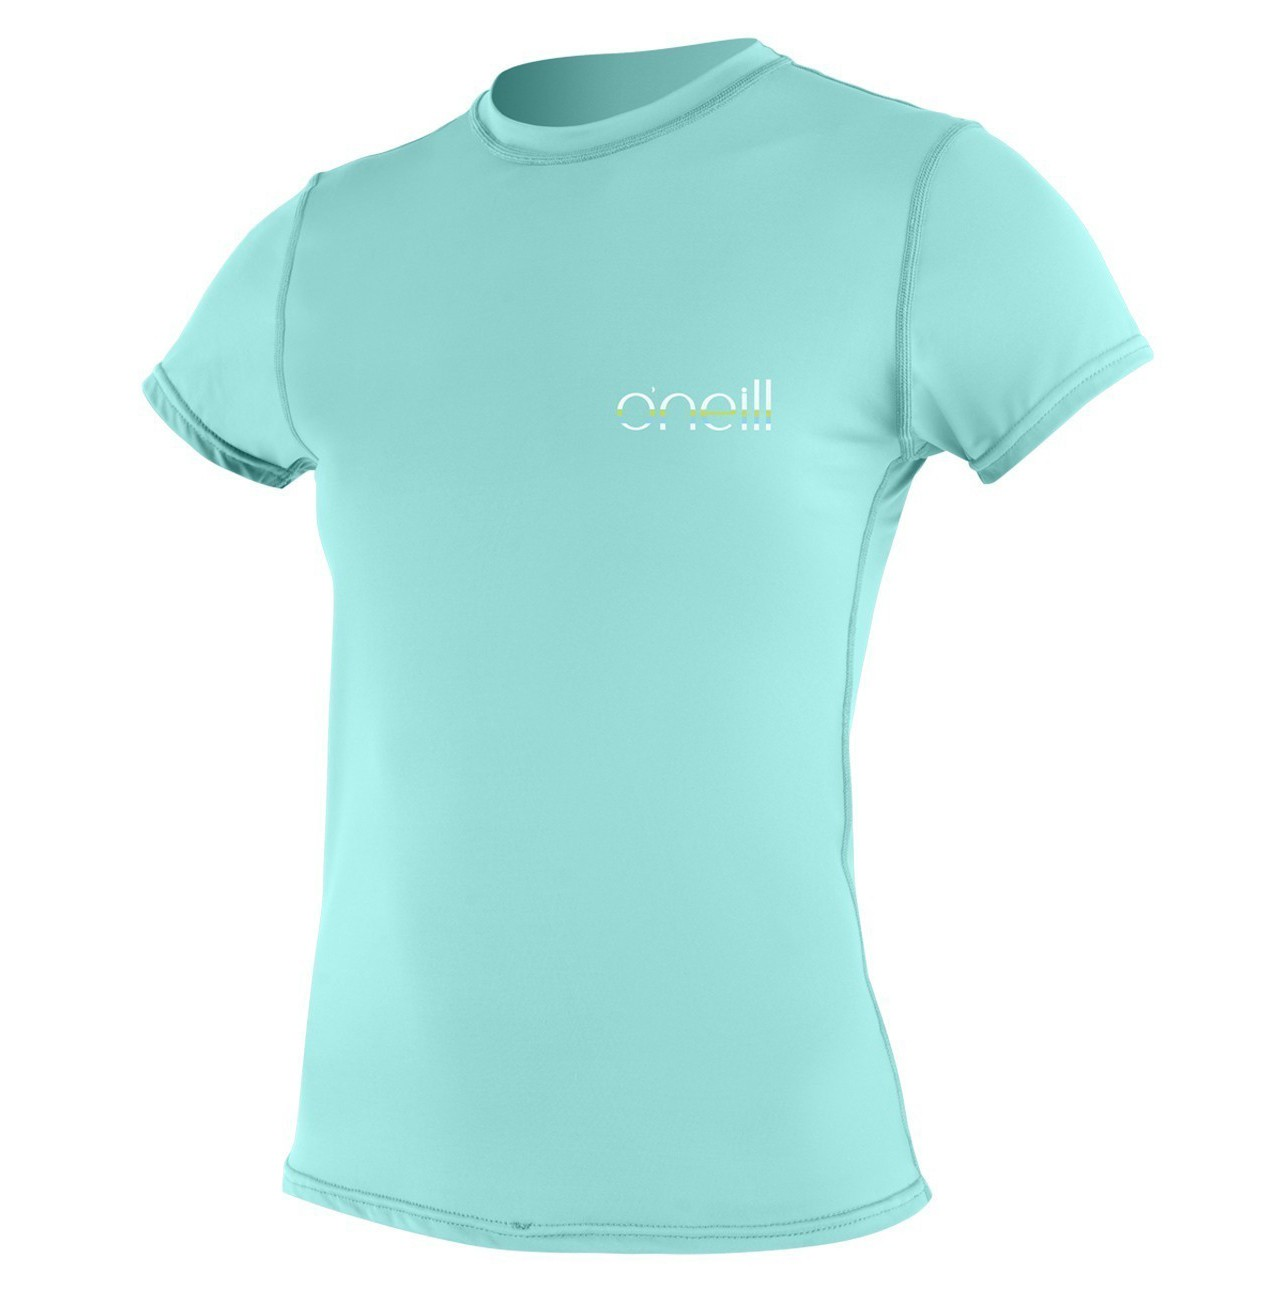 O'Neill 24/7 Tech Crew +30 UPF Short-Sleeve Rashguard (Women's)